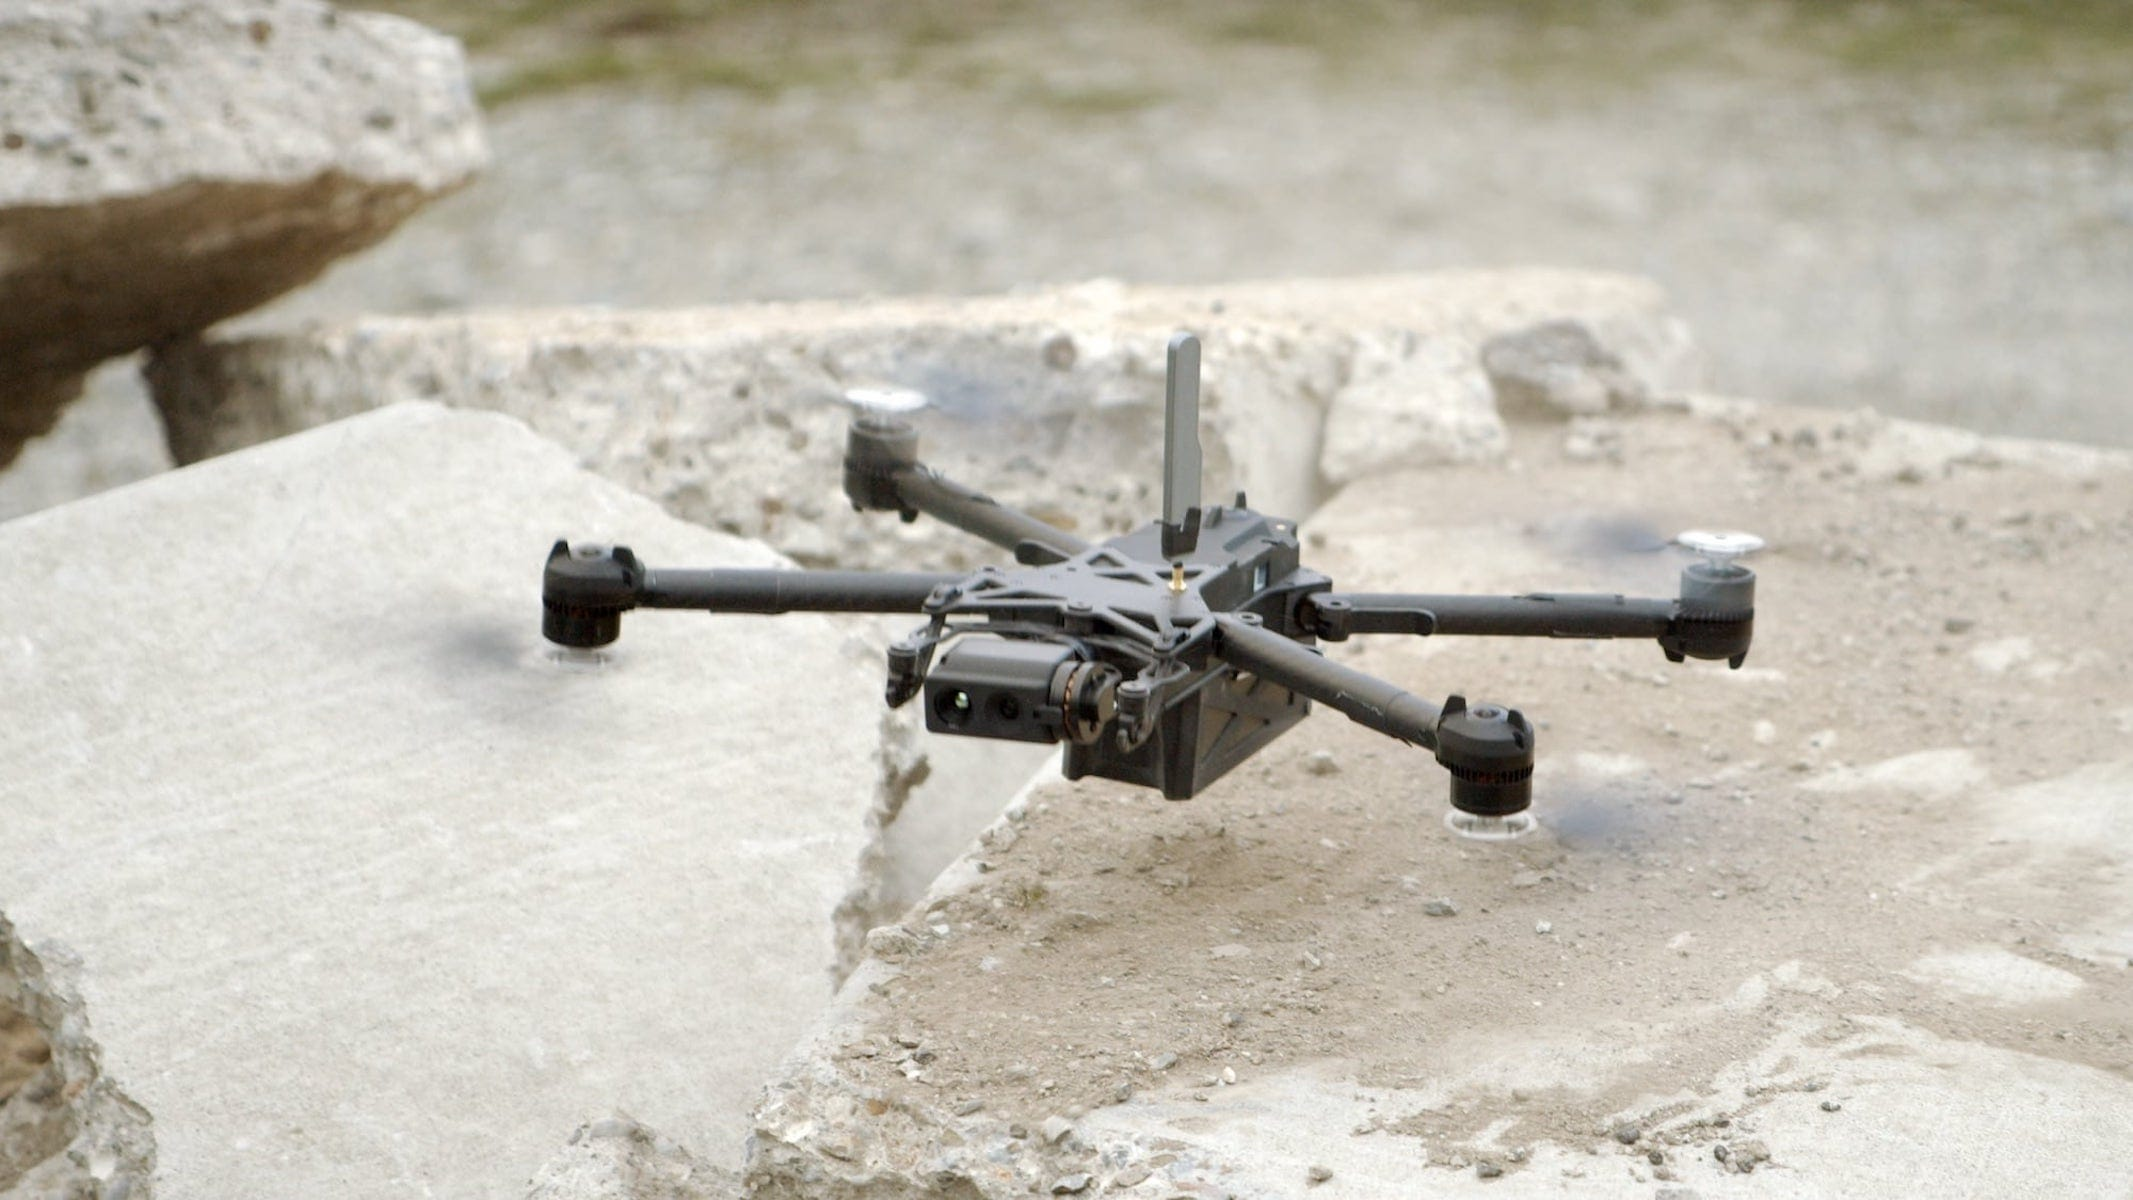 3-Most-expensive-drones-and-why-you-need-them-blog-featured.jpeg